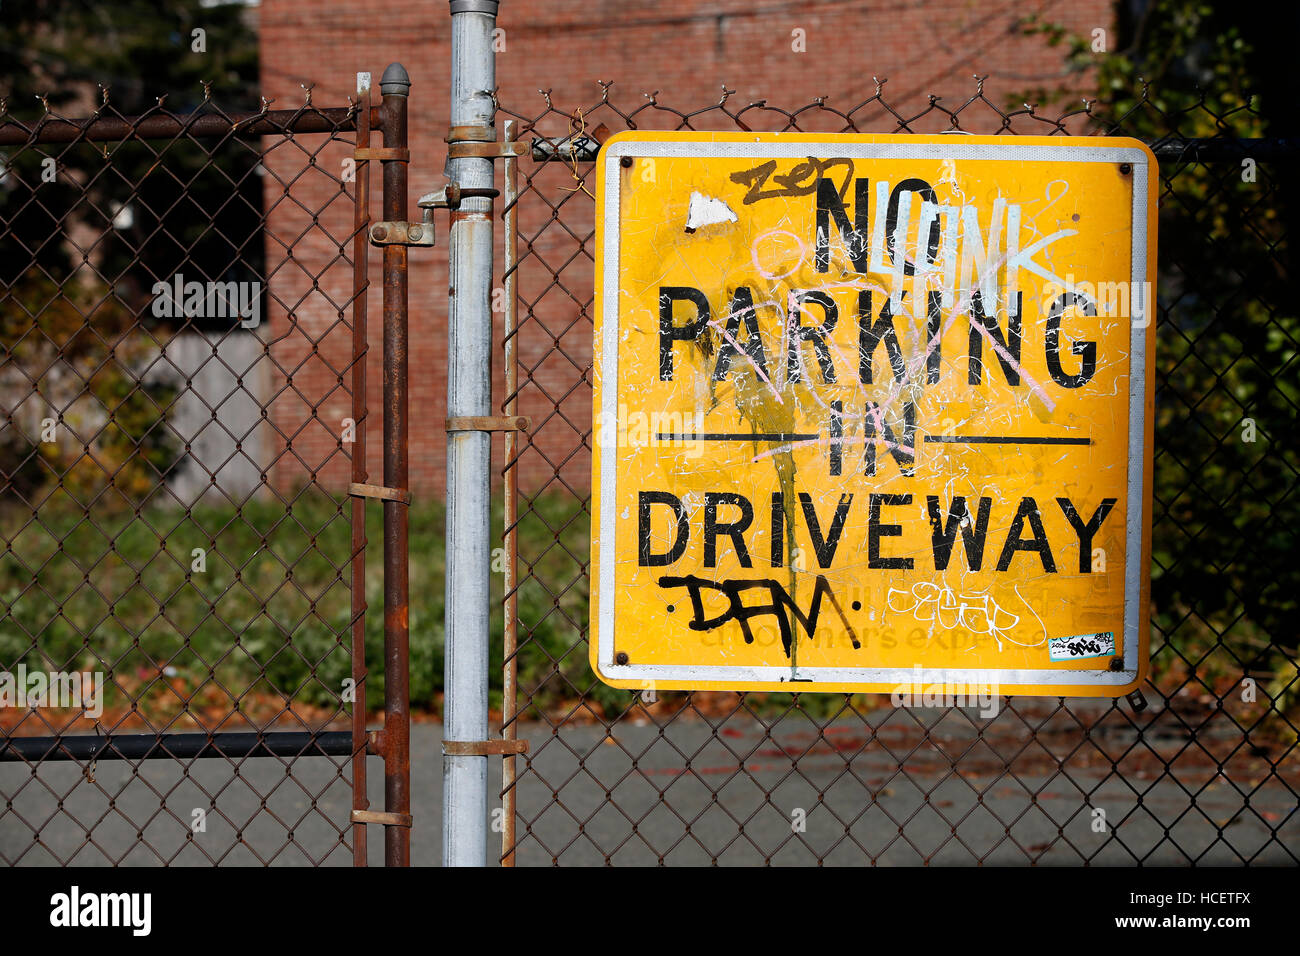 No parking sign on a chain link fence - Stock Image